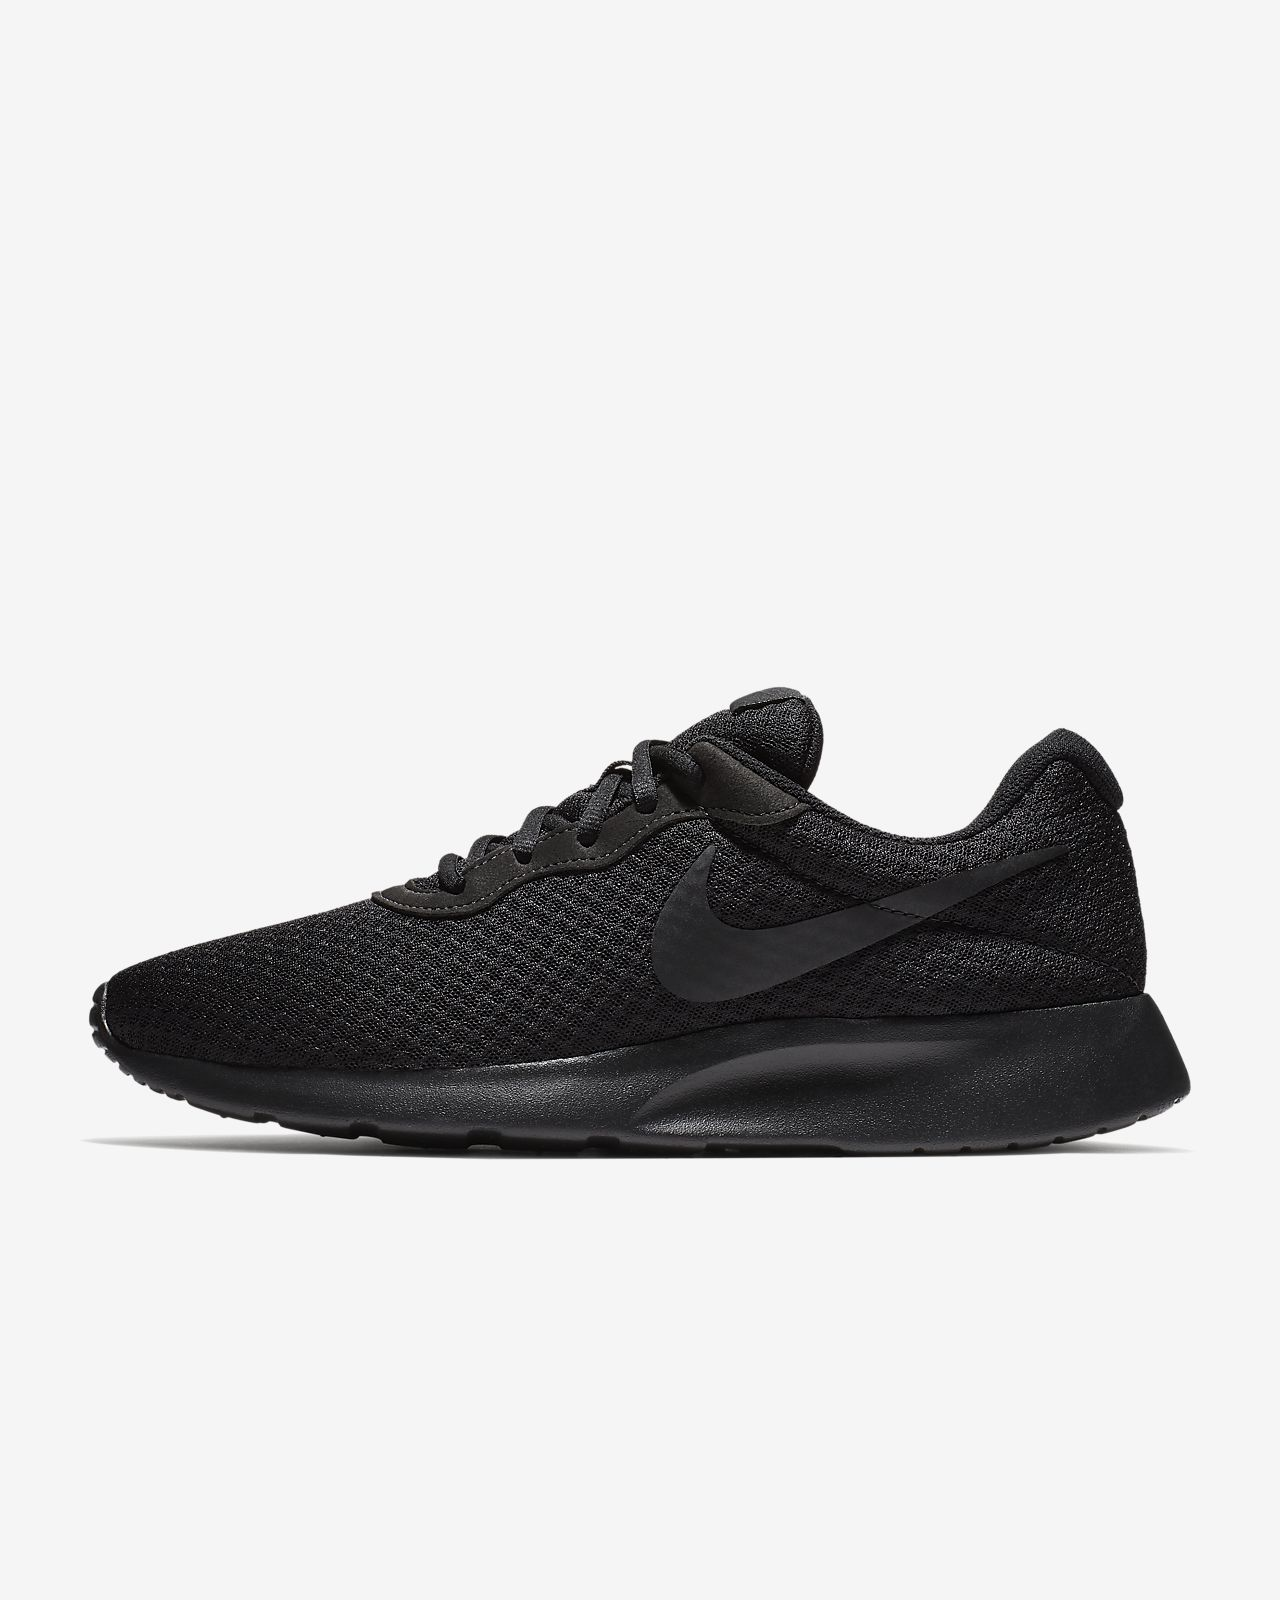 quality design 66d2a aafe9 ... Chaussure Nike Tanjun pour Homme